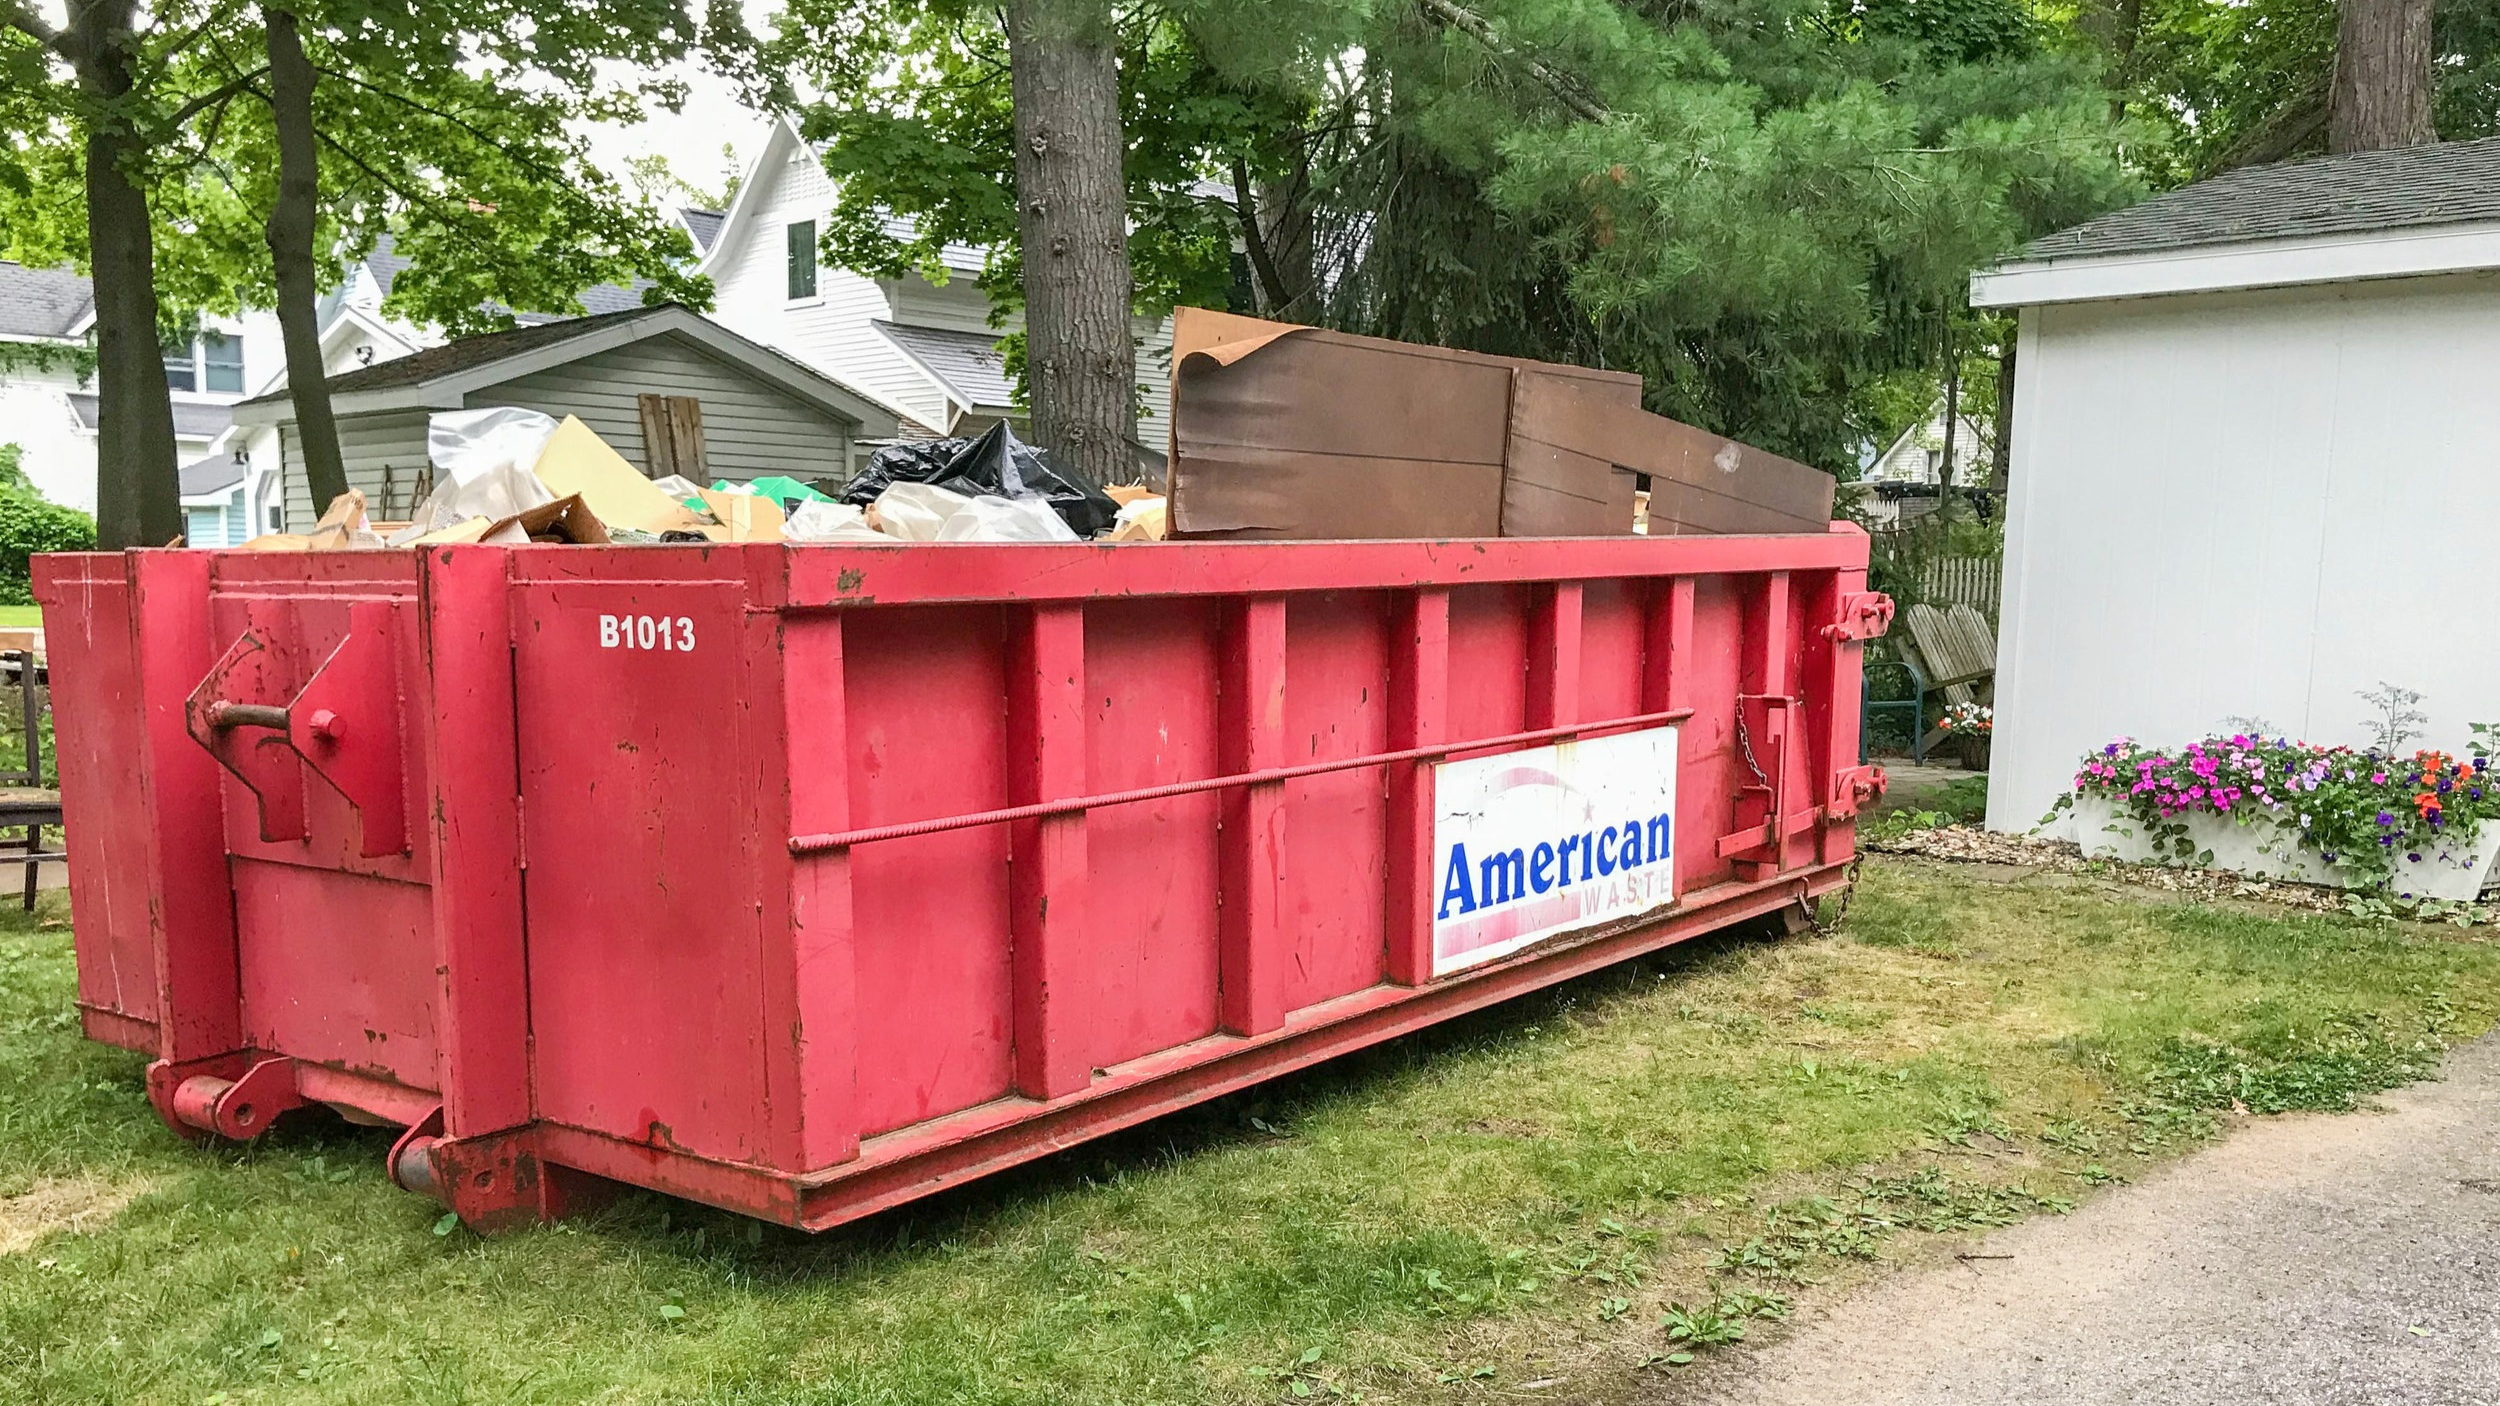 Overfull 10-Yard—Do Not Fill Over Top of Container